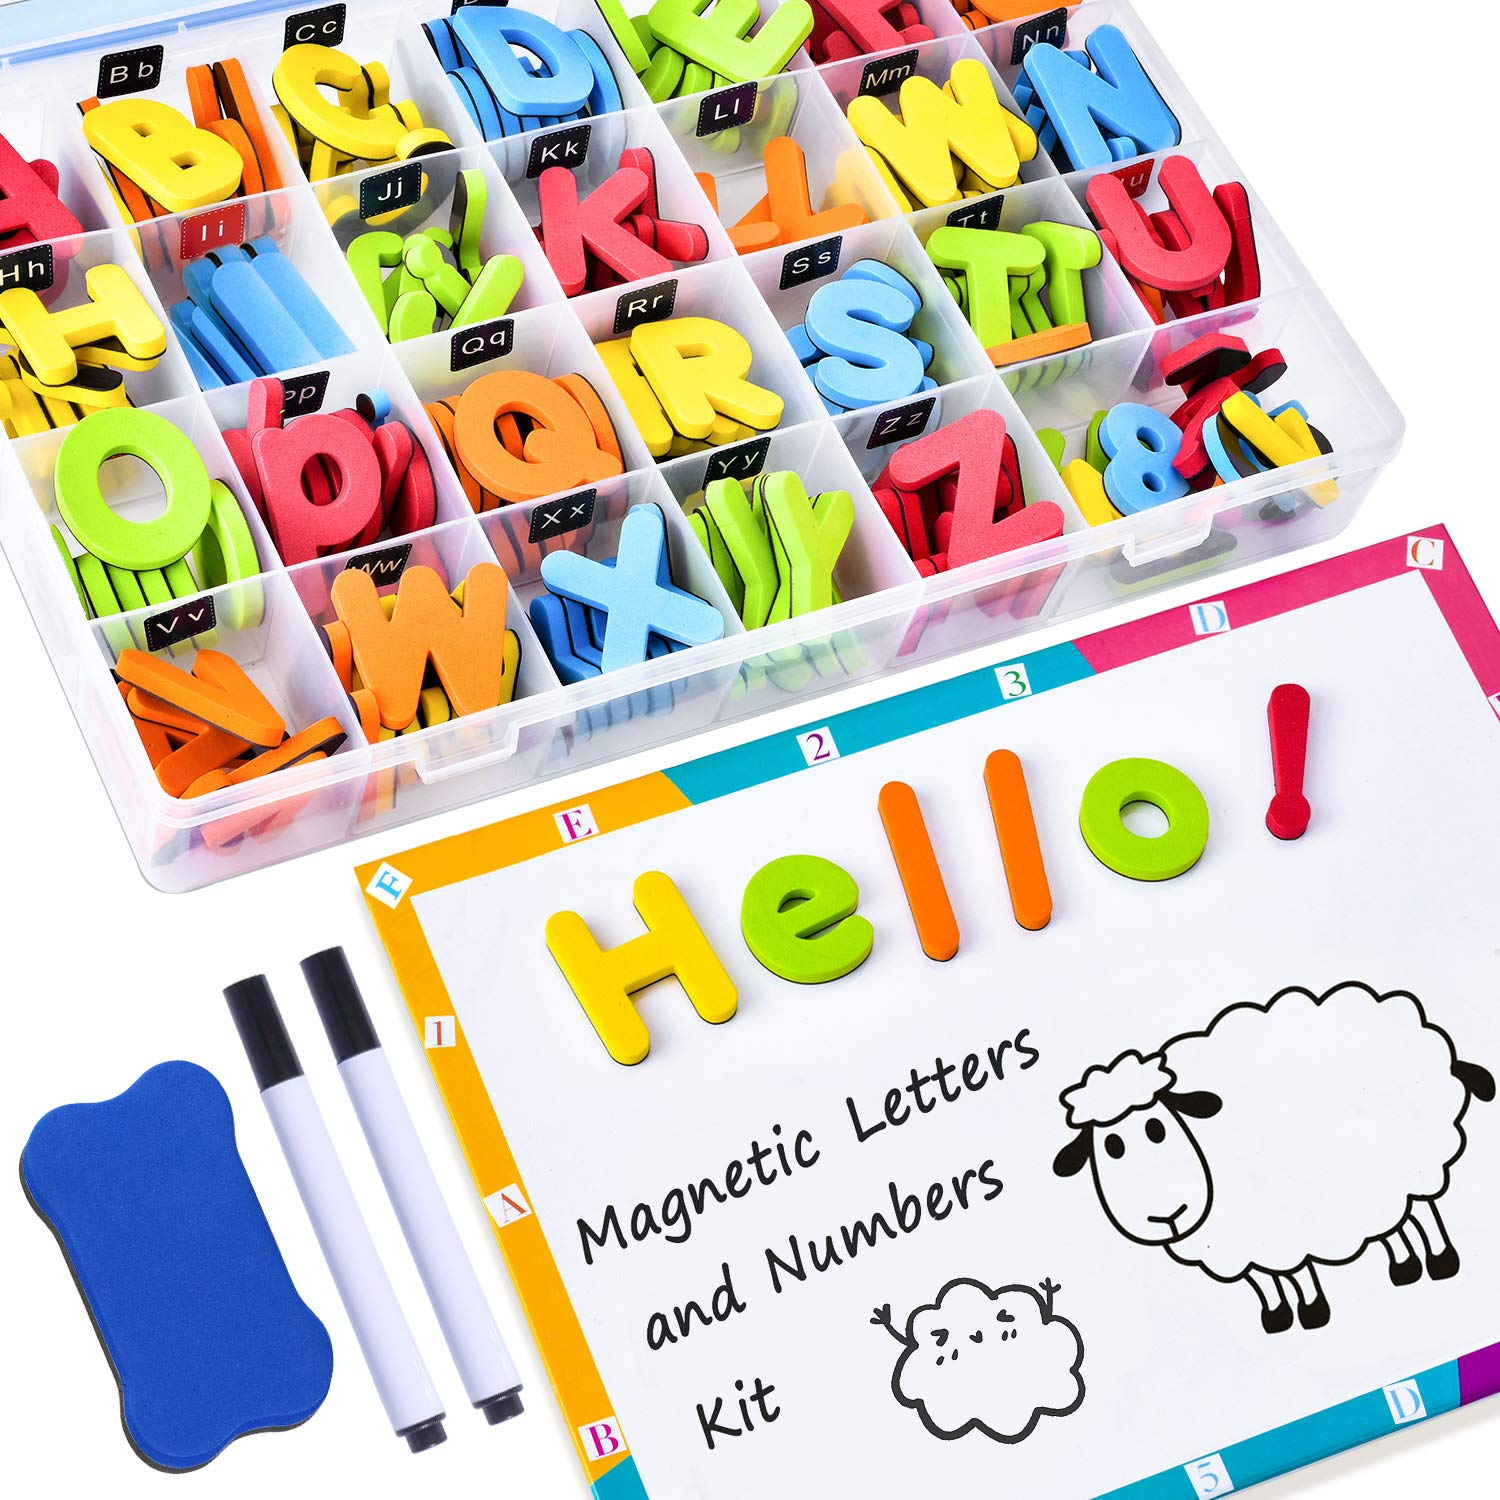 225Pcs Magnetic Letters and Numbers for Kids with Double-Side Magnet Board and Storage Box - ABC Uppercase Lowercase Foam Alphabet Letters for Toddlers - Classroom Home Education Spelling Learning Set by GINMIC